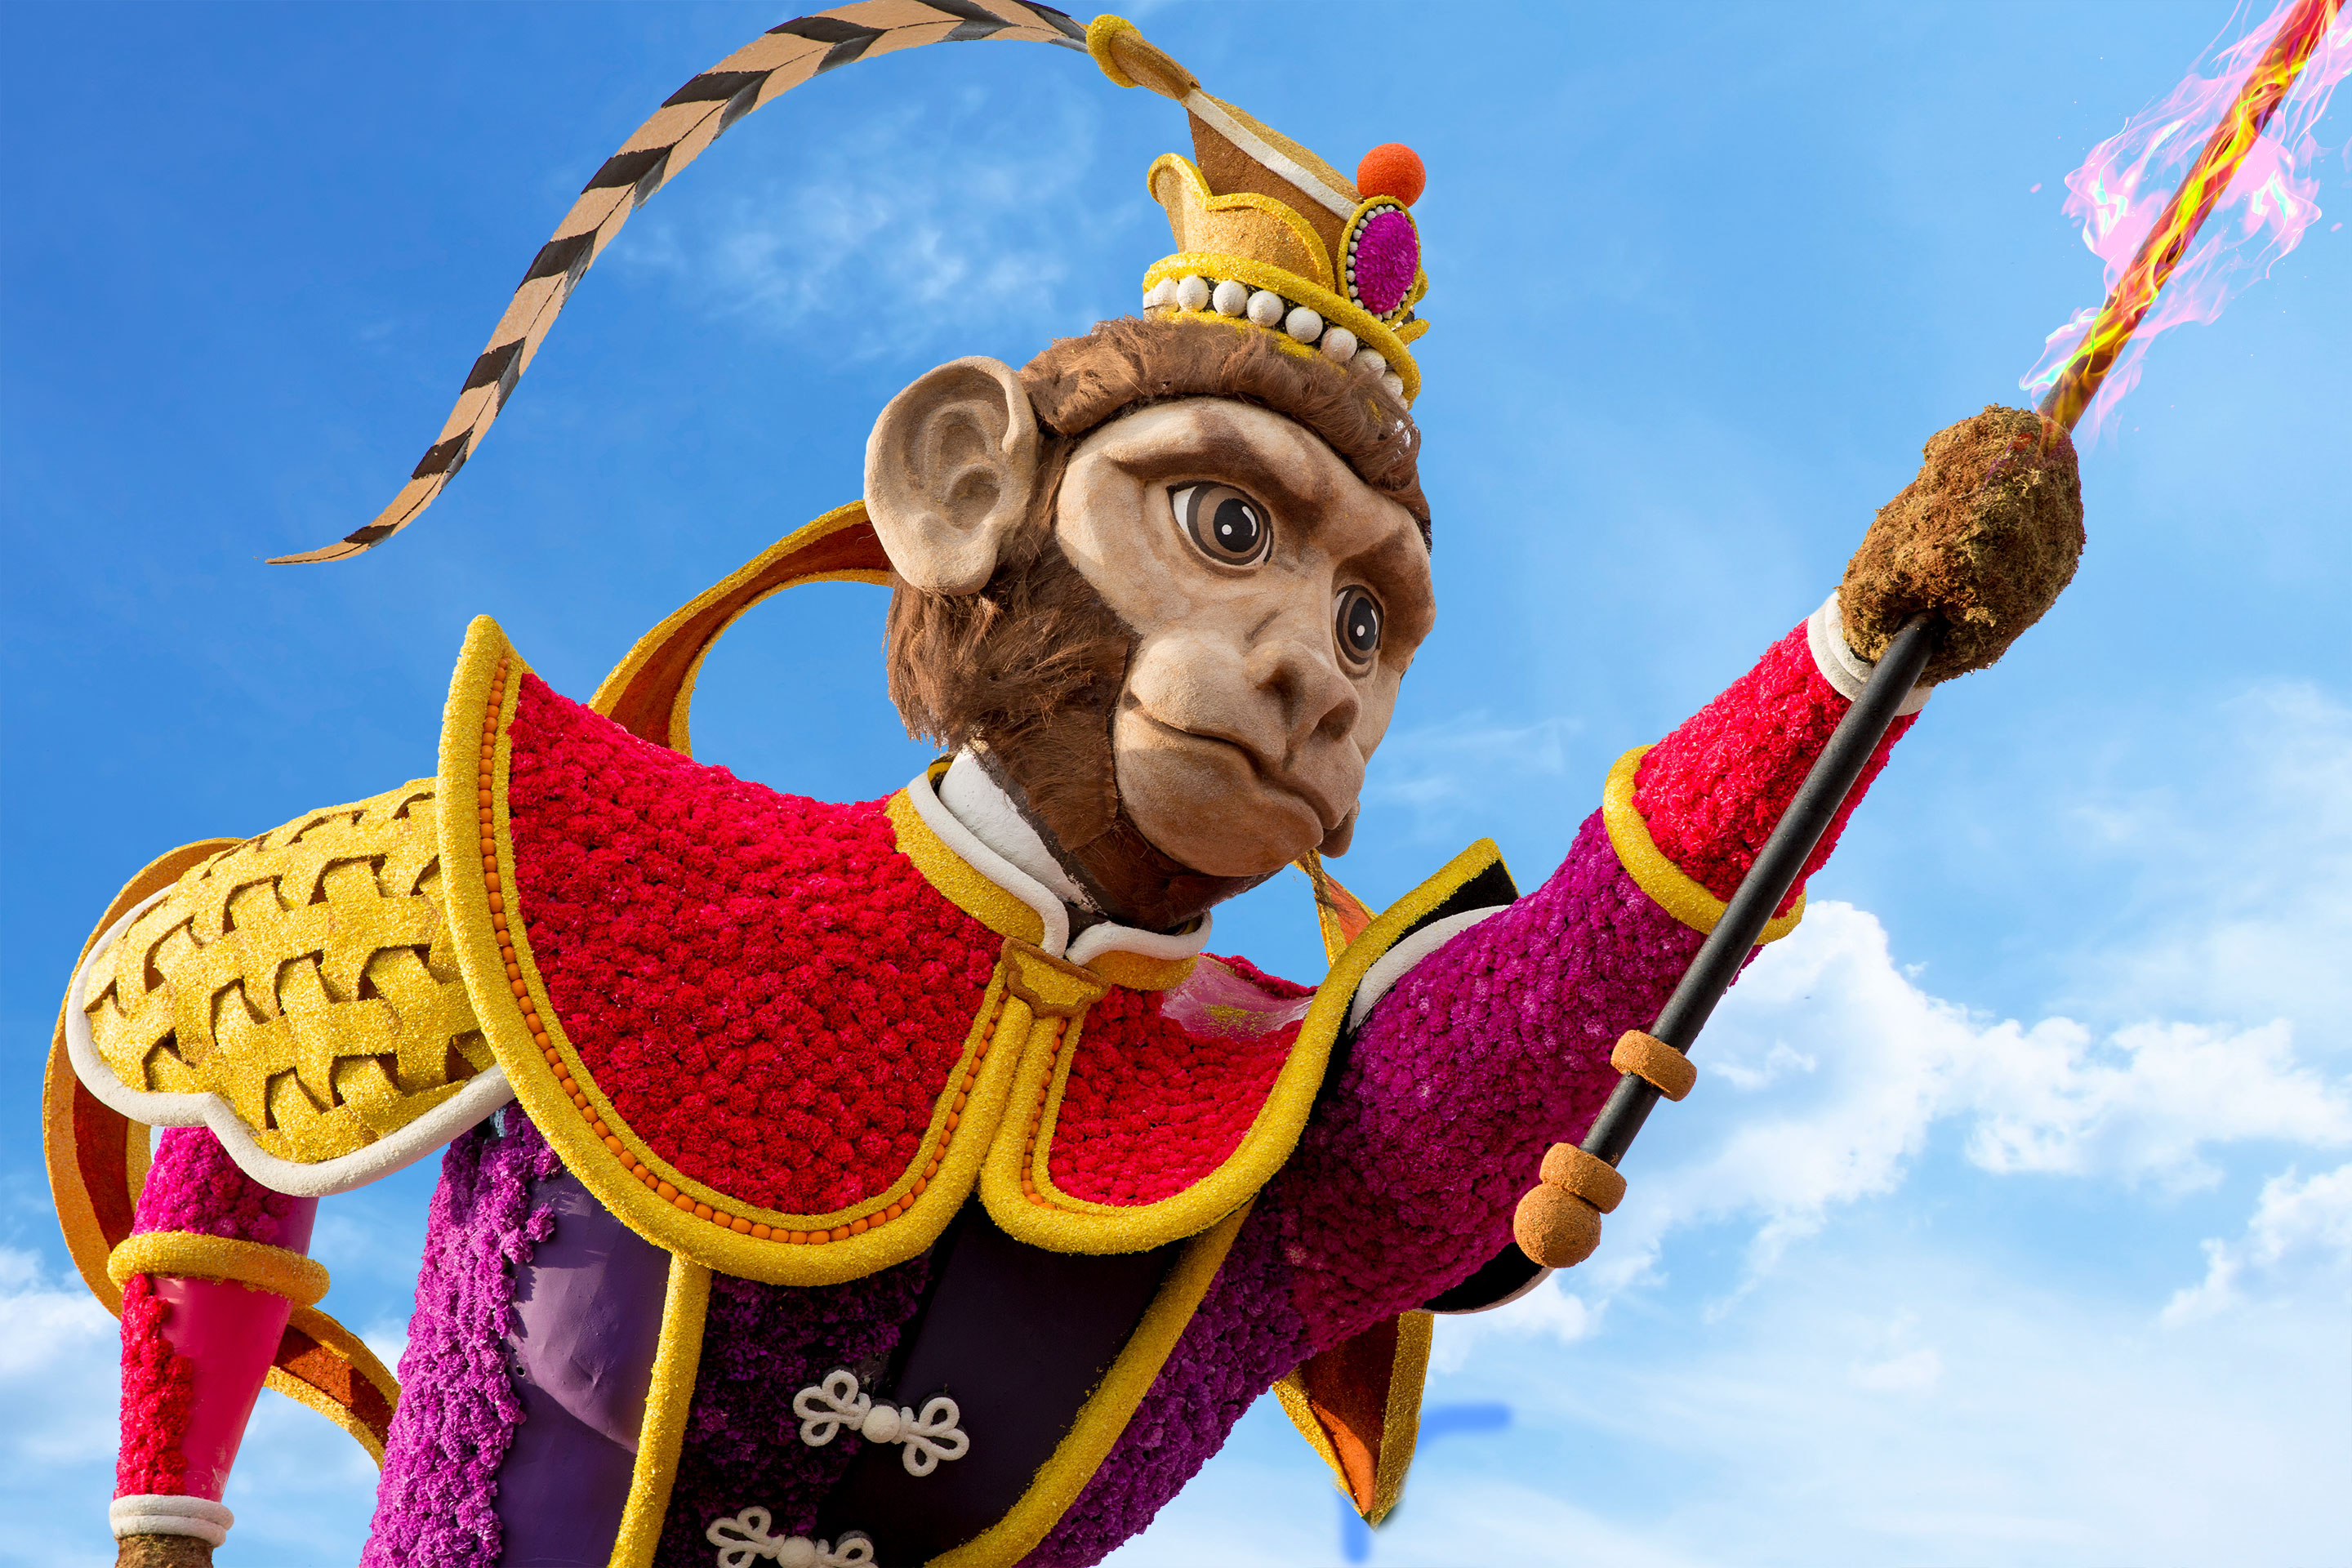 The Monkey King: Journey to Success